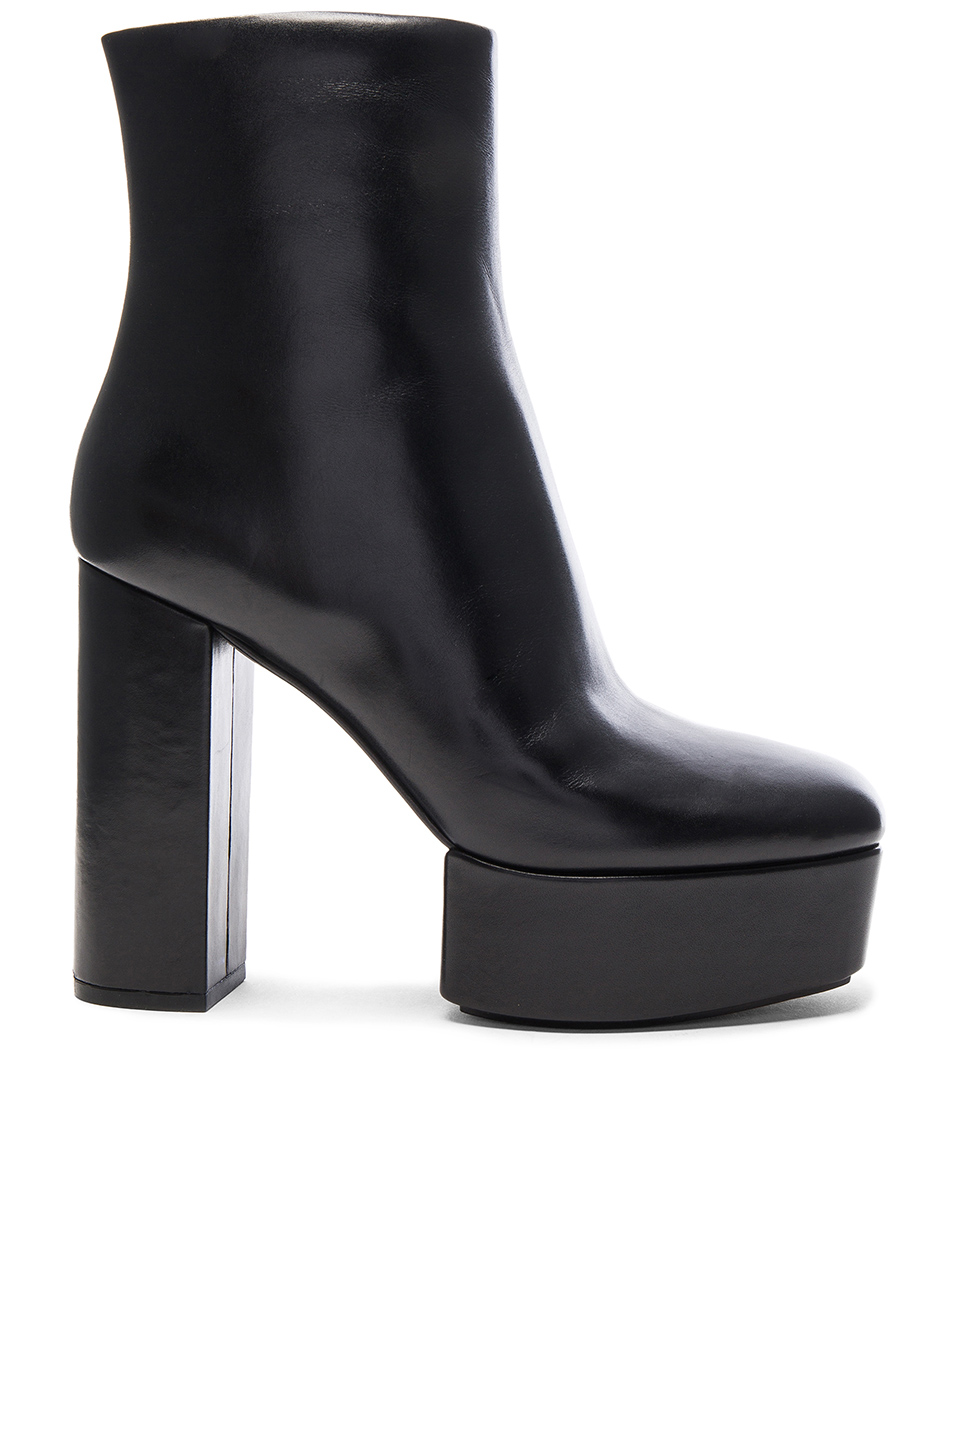 ALEXANDER WANG Cora Leather Platform Ankle Boots in Black